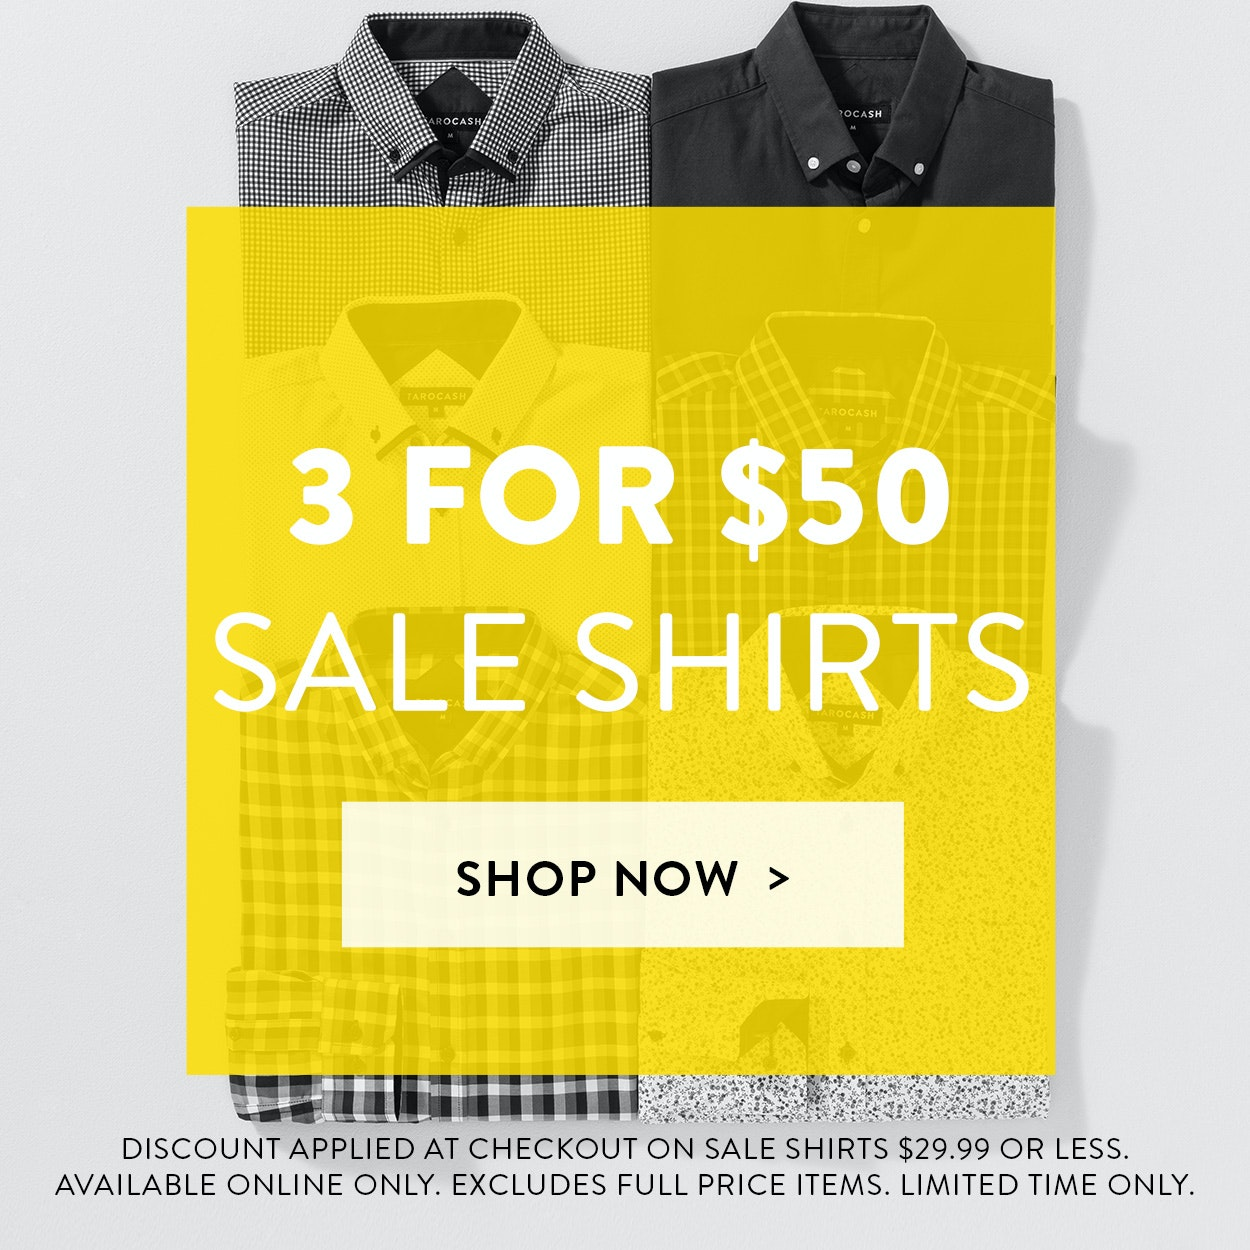 Sale Shirts: 3 for $50